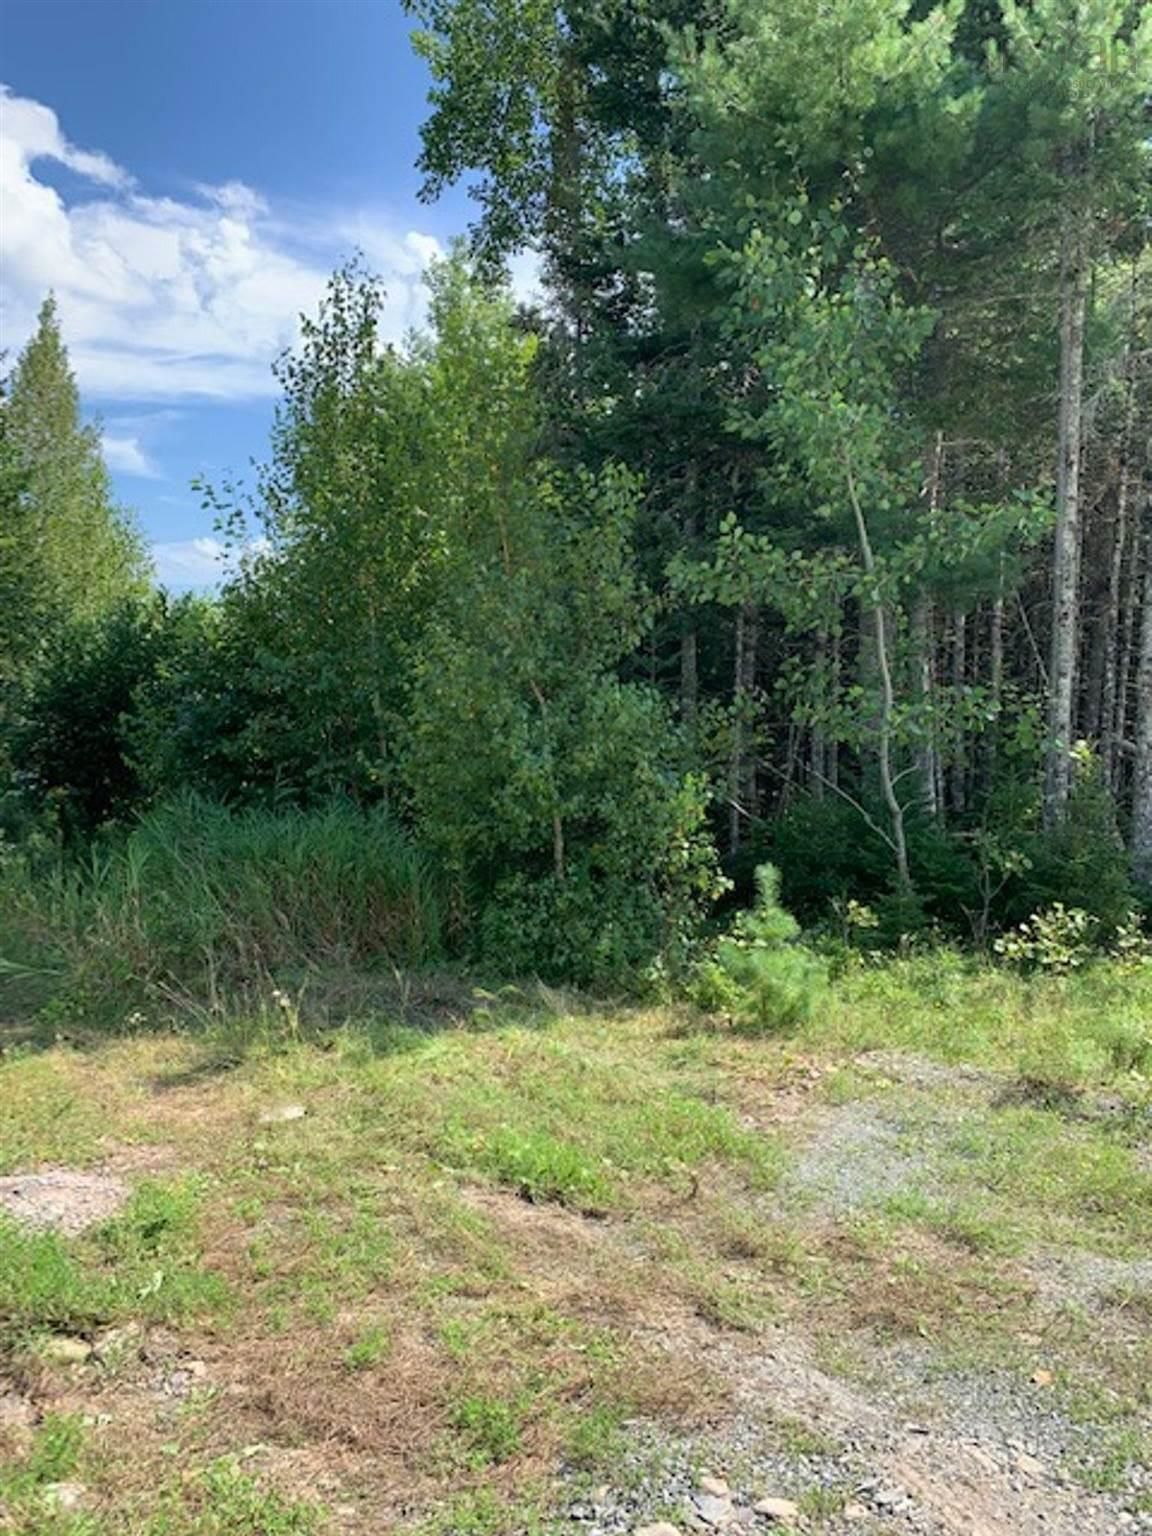 Main Photo: Lot 15 Fairway Avenue in Shubenacadie East: 105-East Hants/Colchester West Vacant Land for sale (Halifax-Dartmouth)  : MLS®# 202122115